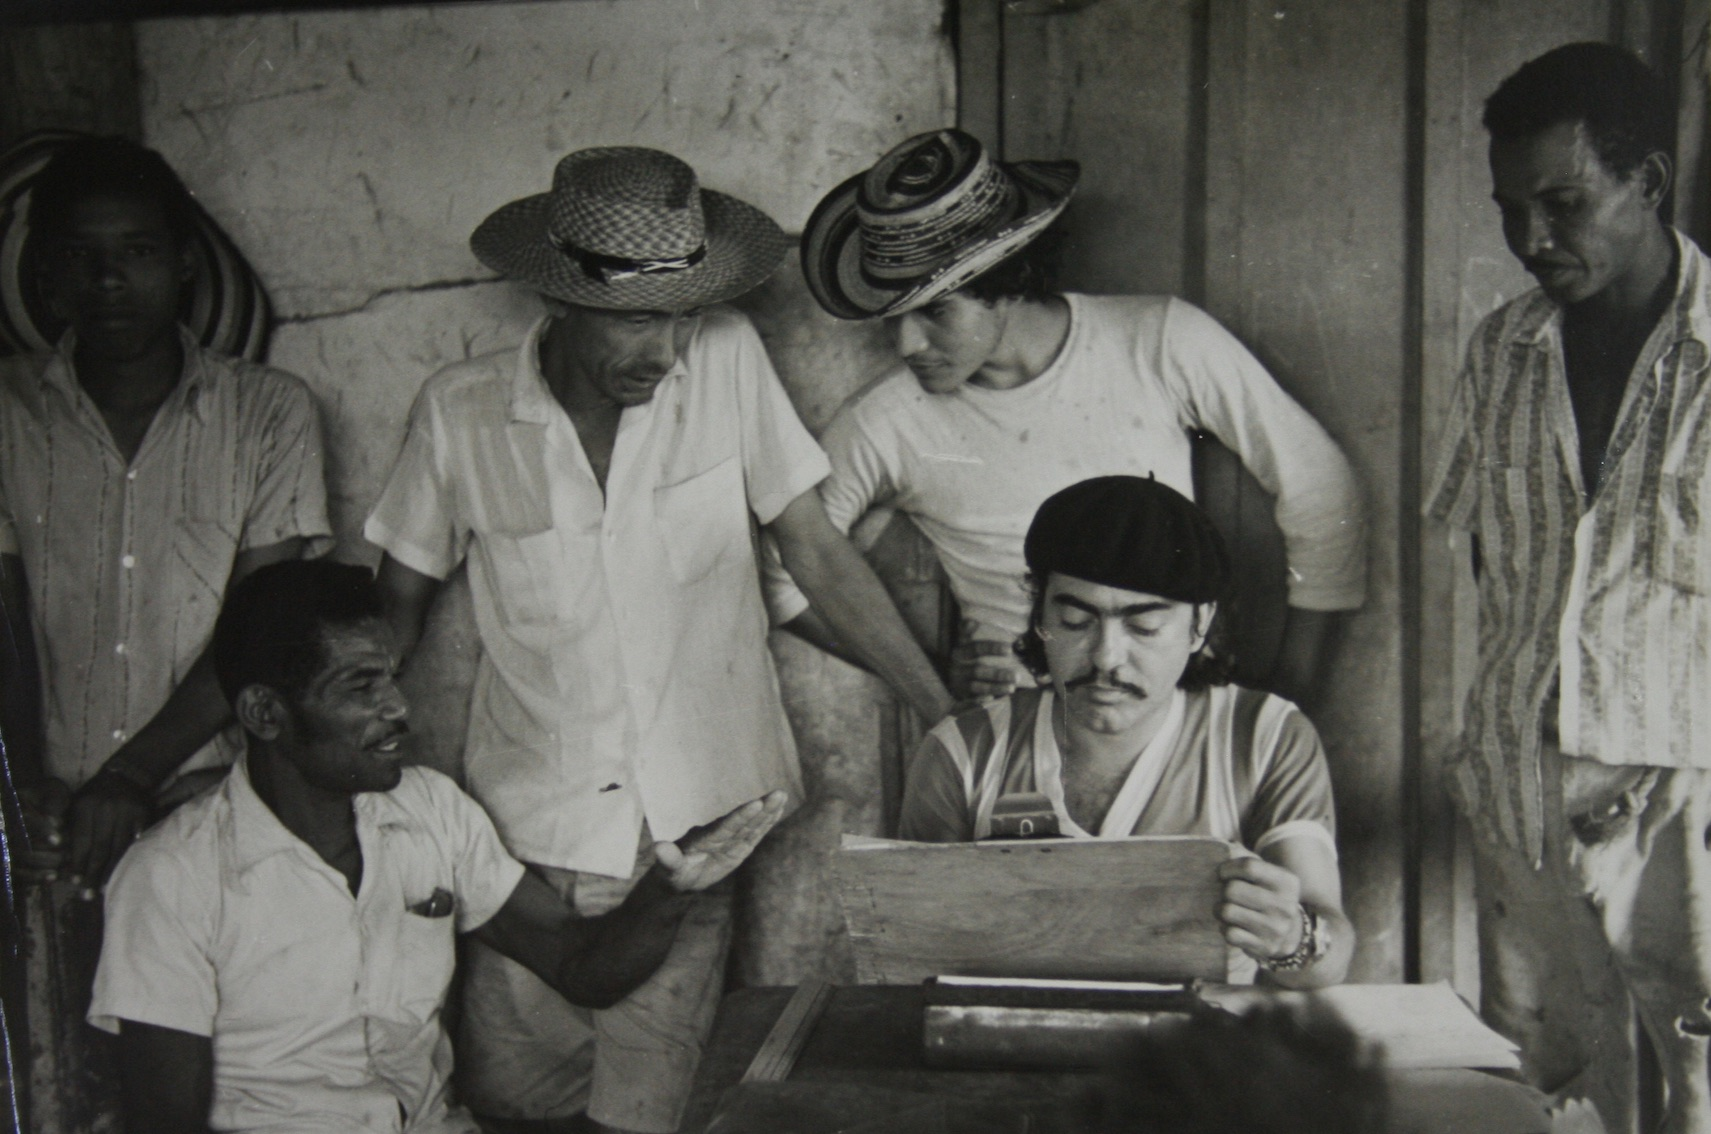 Fals Borda with study group for Felicita Campos, 1973. Coleccion Fotografica, 1946